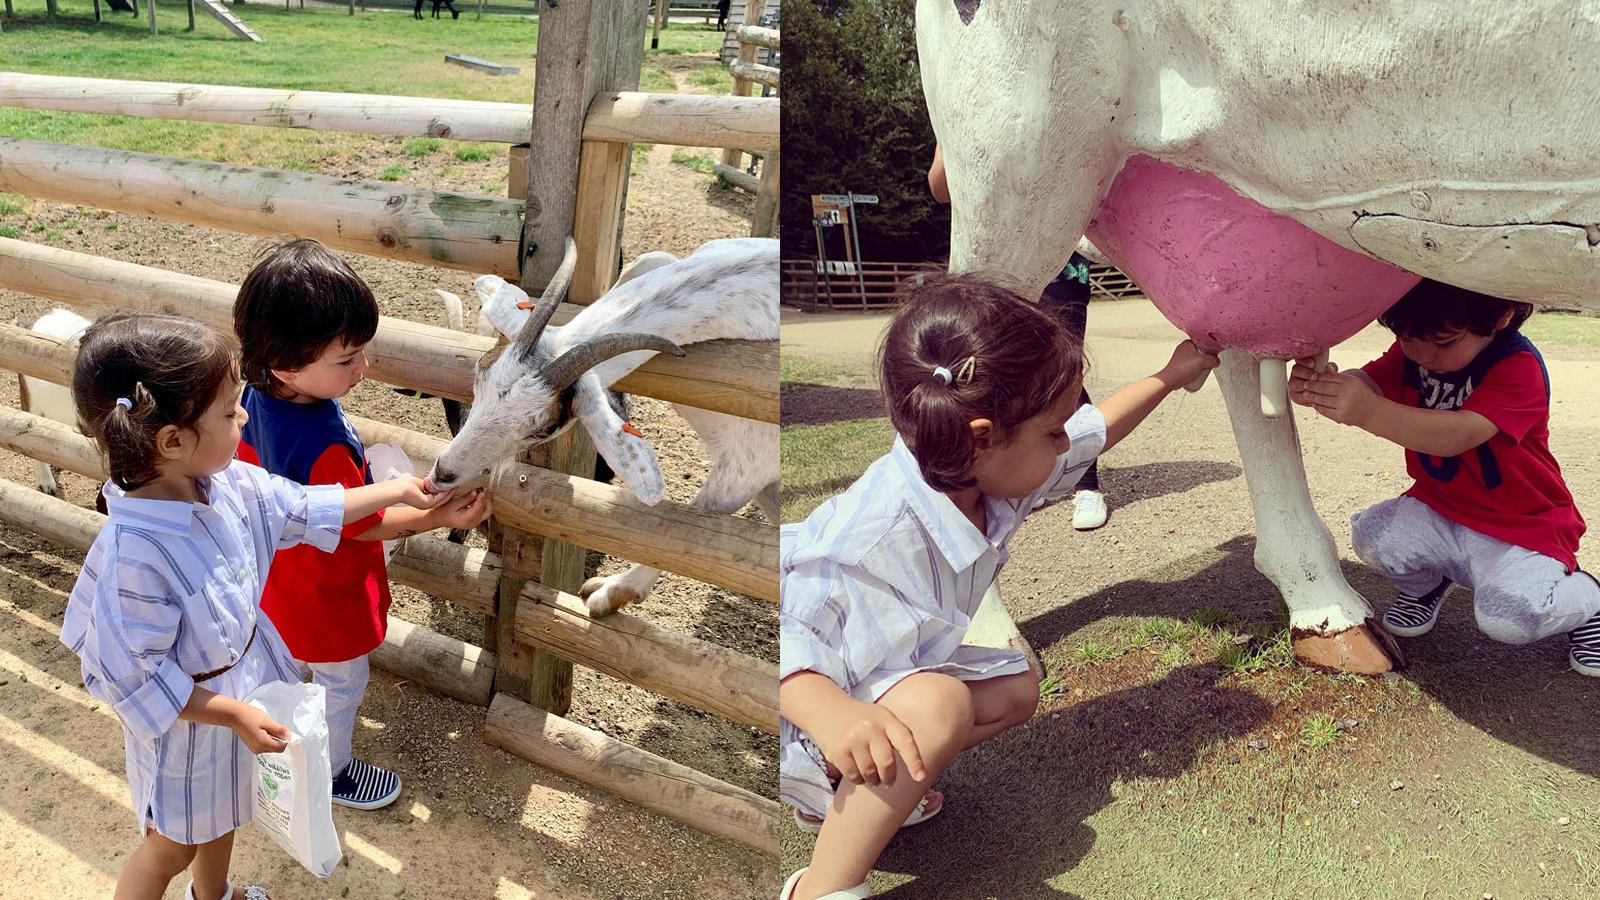 Taimur Ali Khan enjoys farm life in London, gets overjoyed as he feeds a baby goat with buddy Kainat